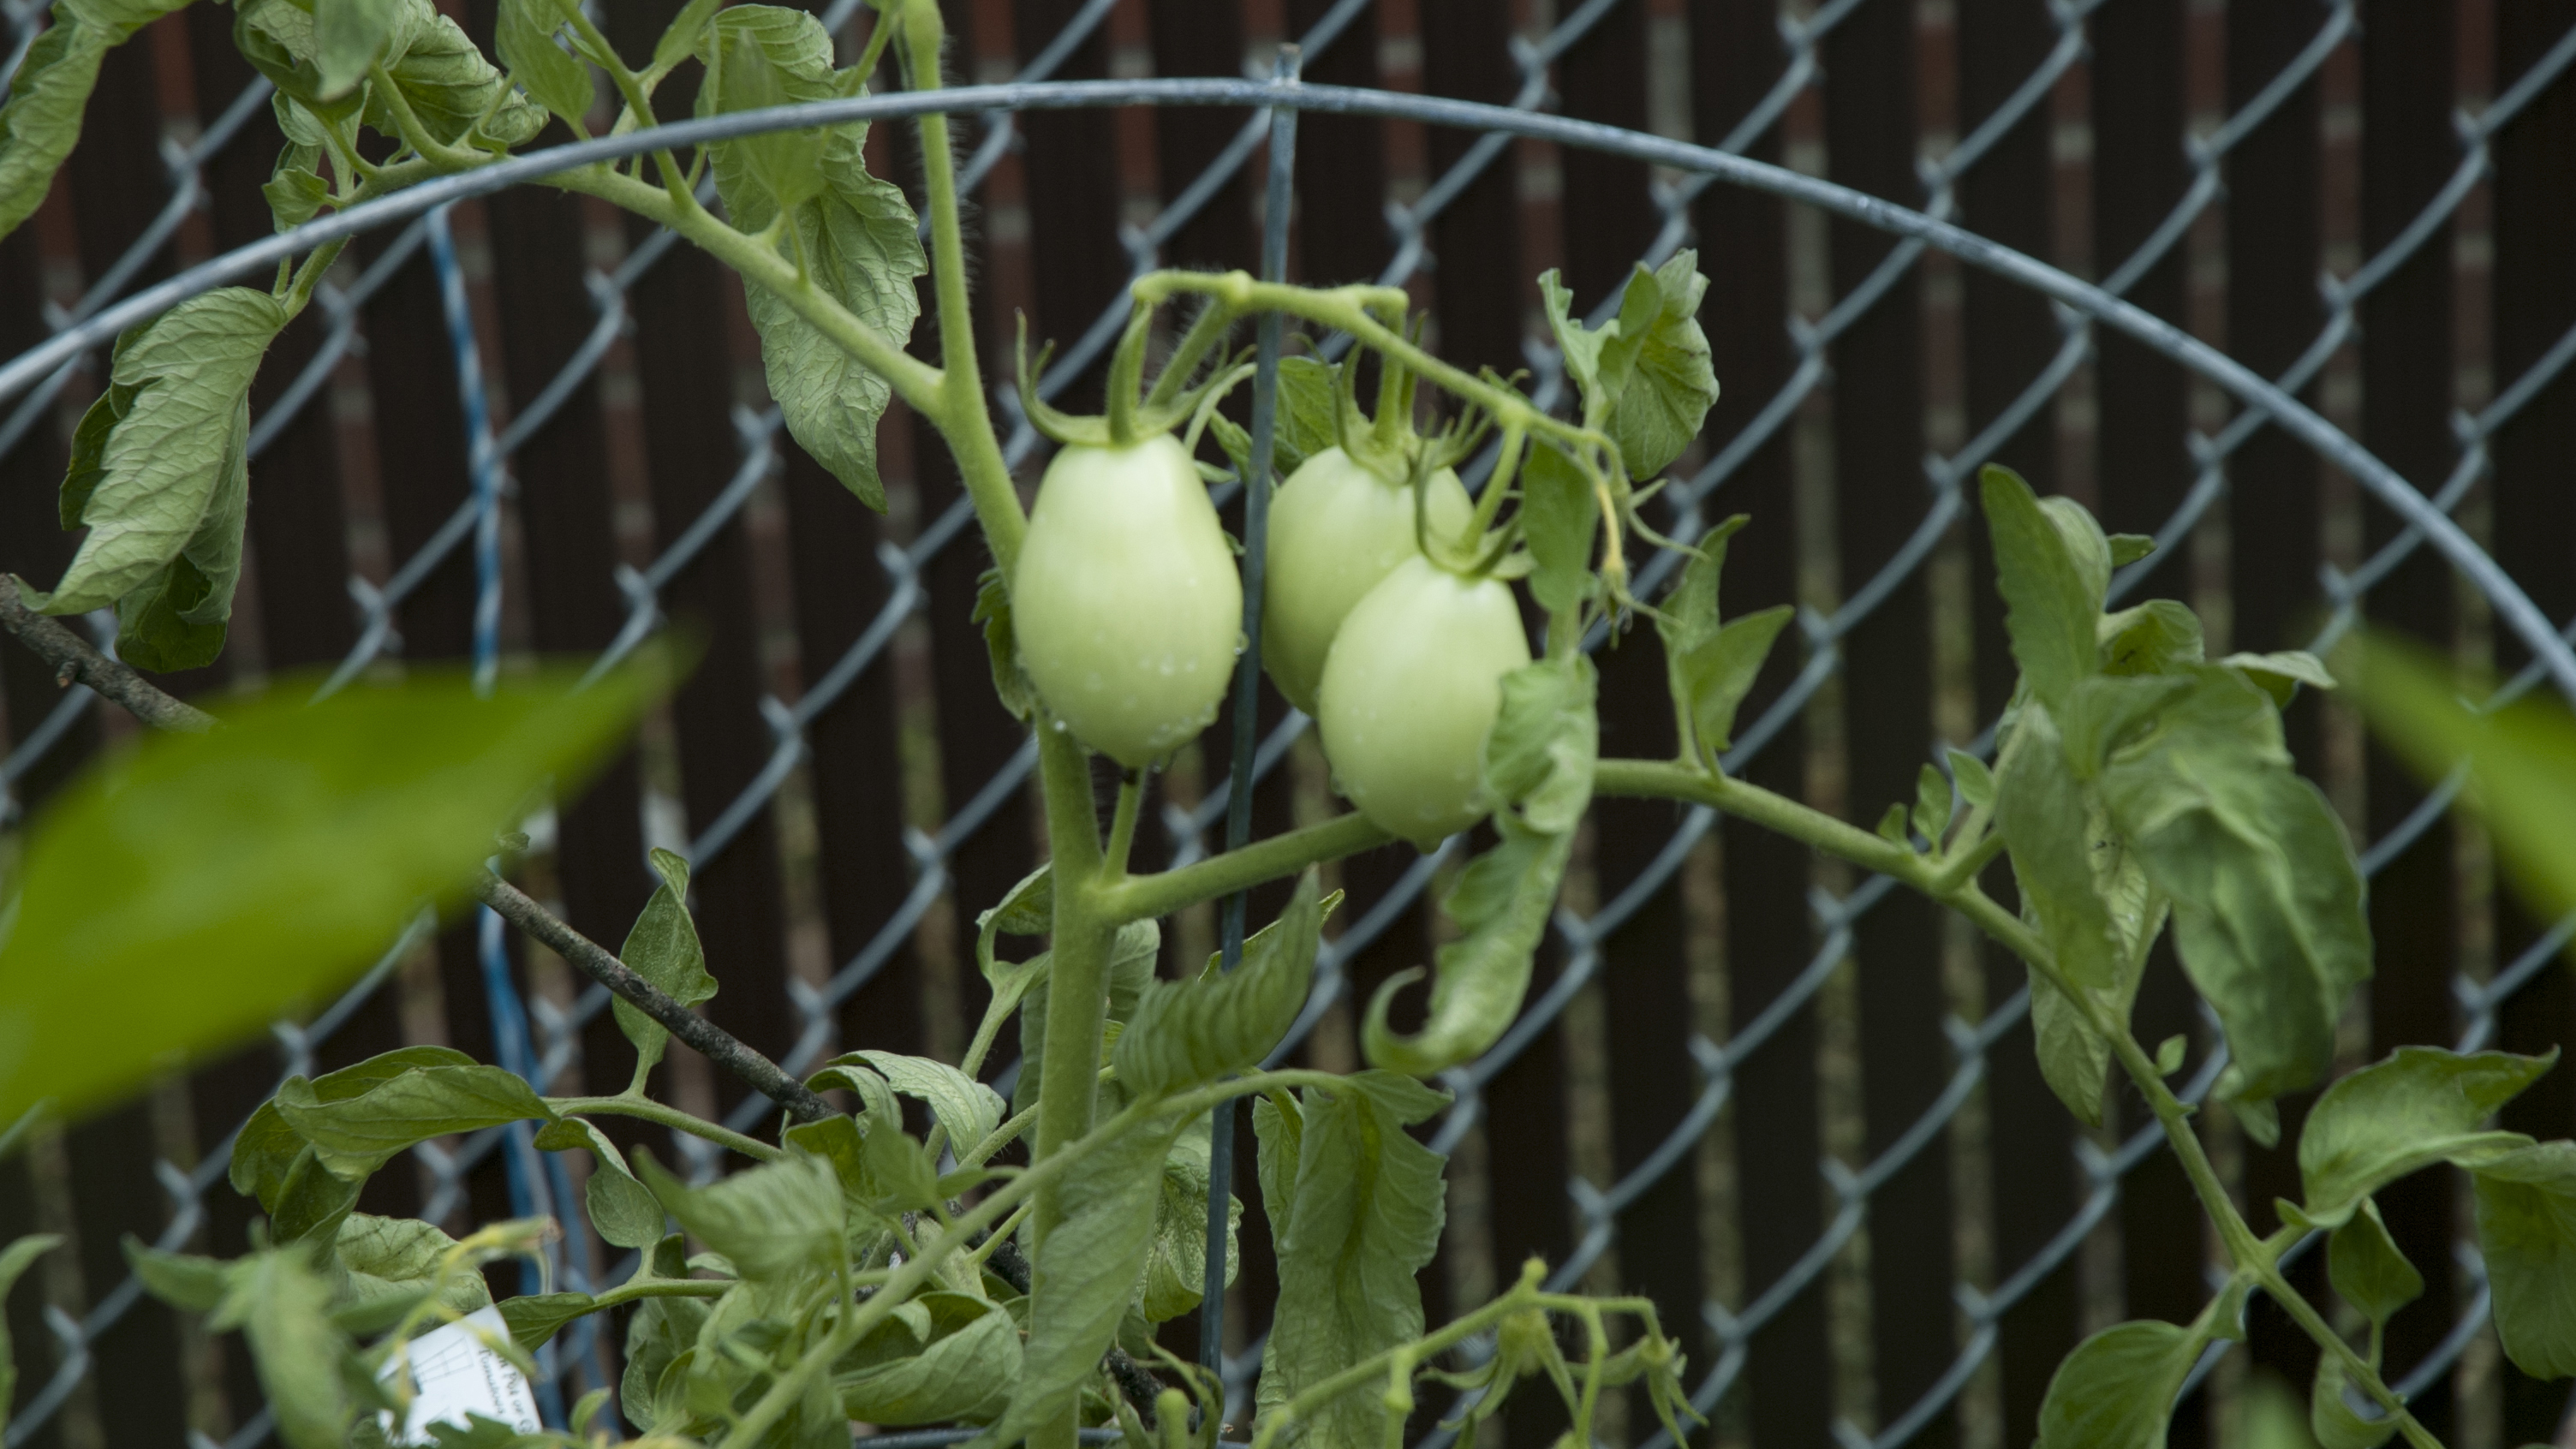 Green tomatos grown in the Culinary Arts garden.